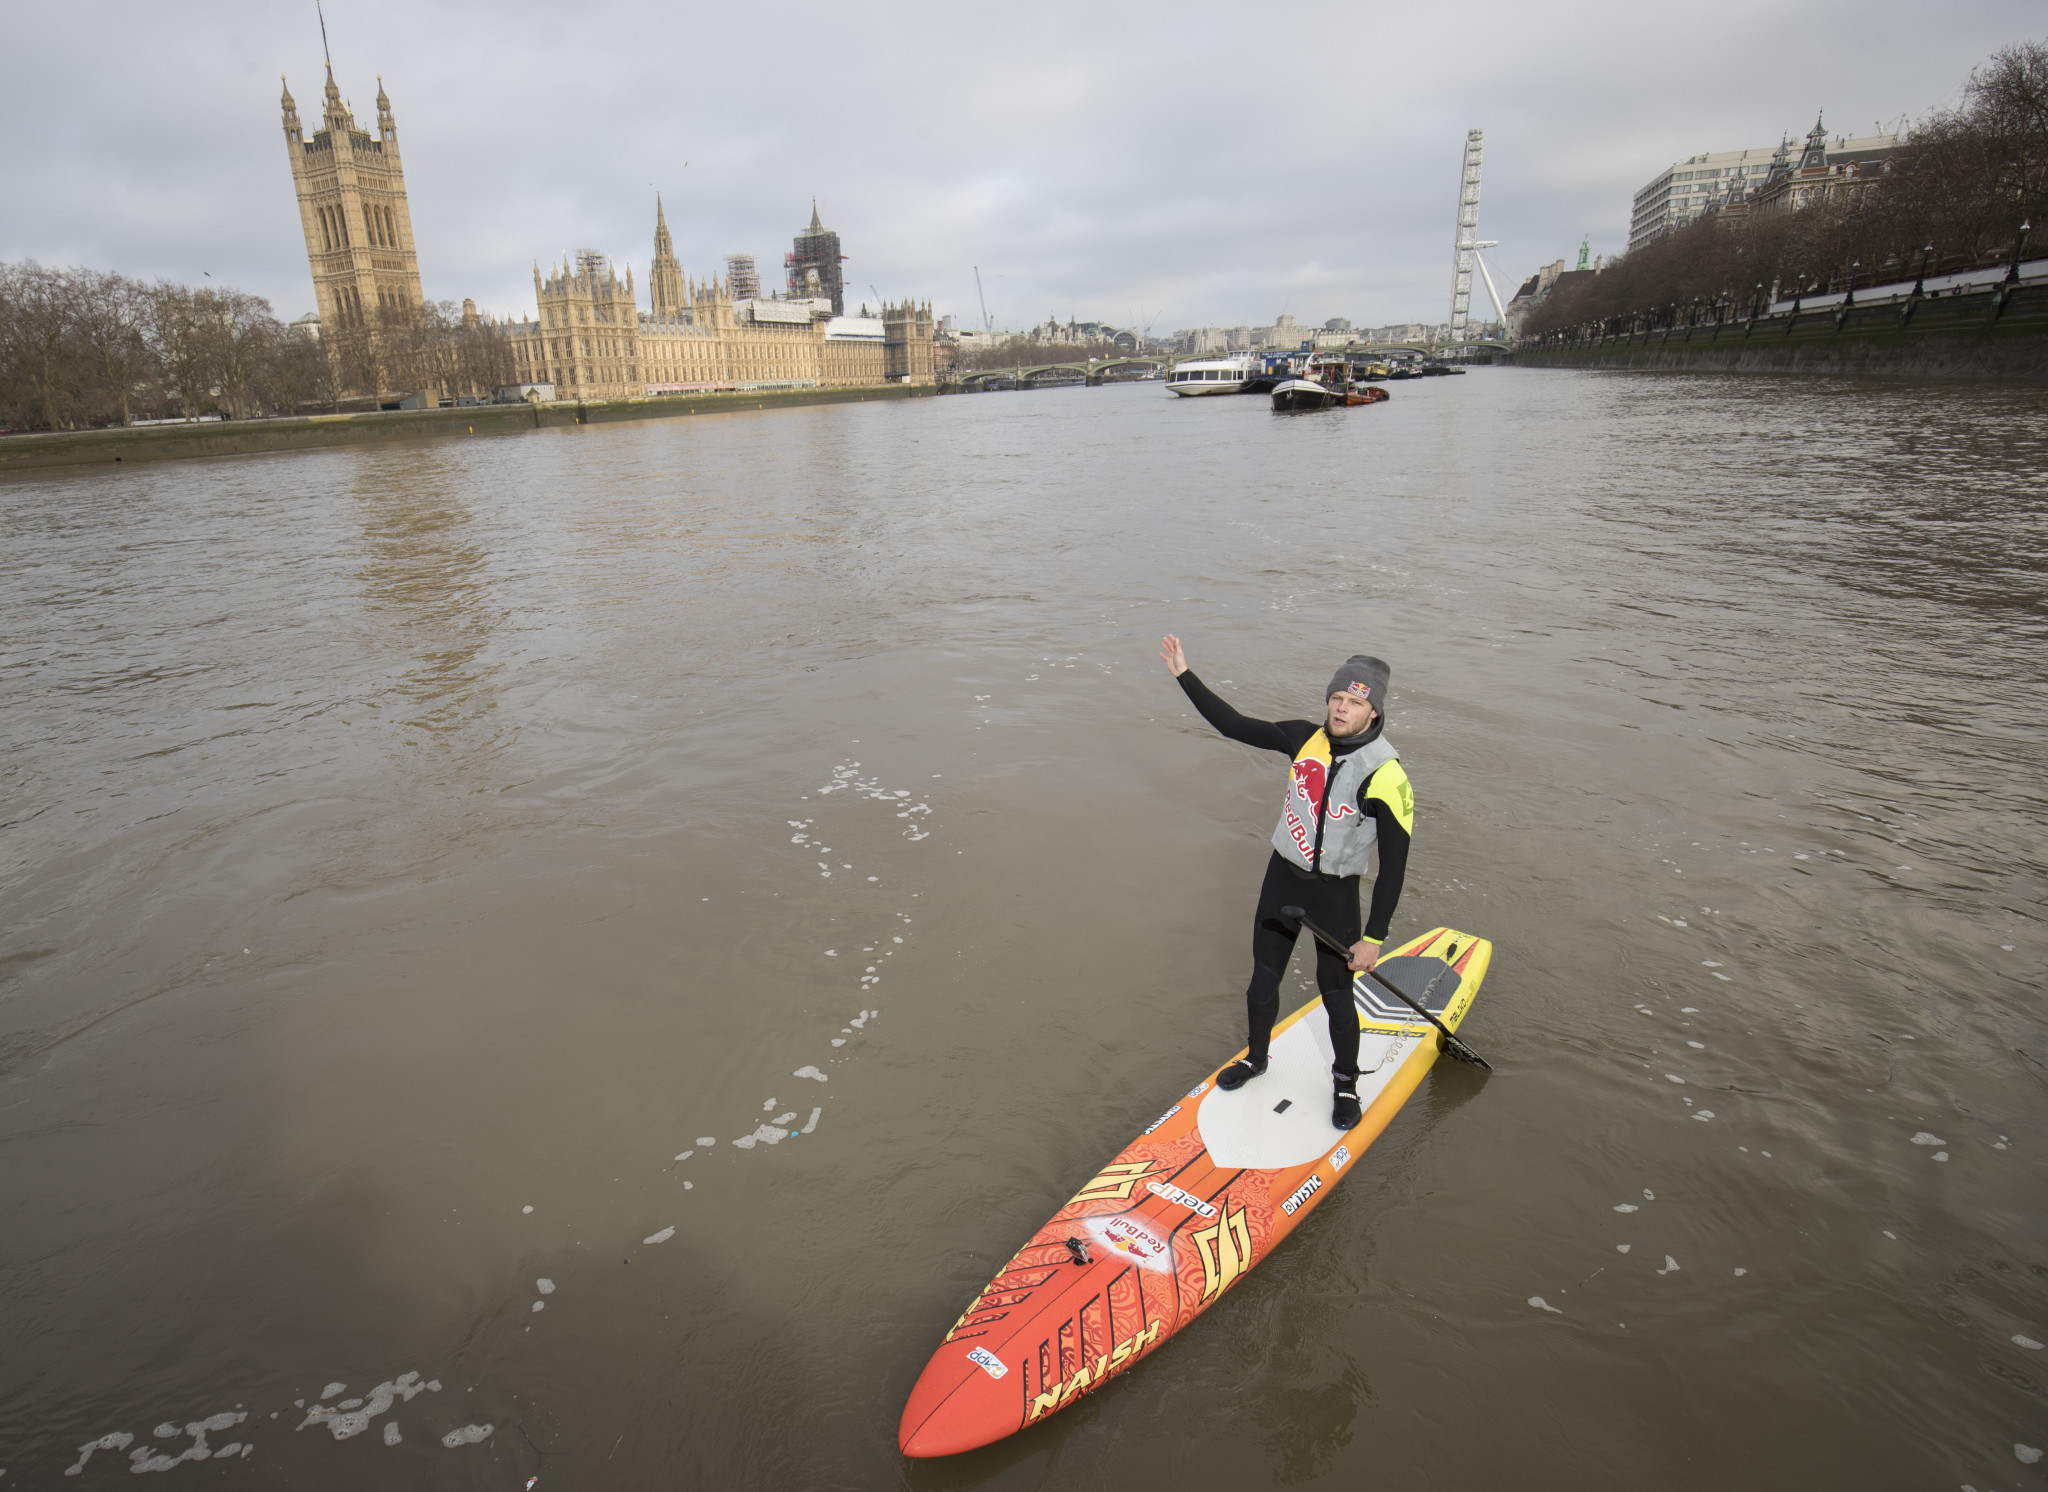 Casper Steinfath pictured paddling on the River Thames in London ©Getty Images